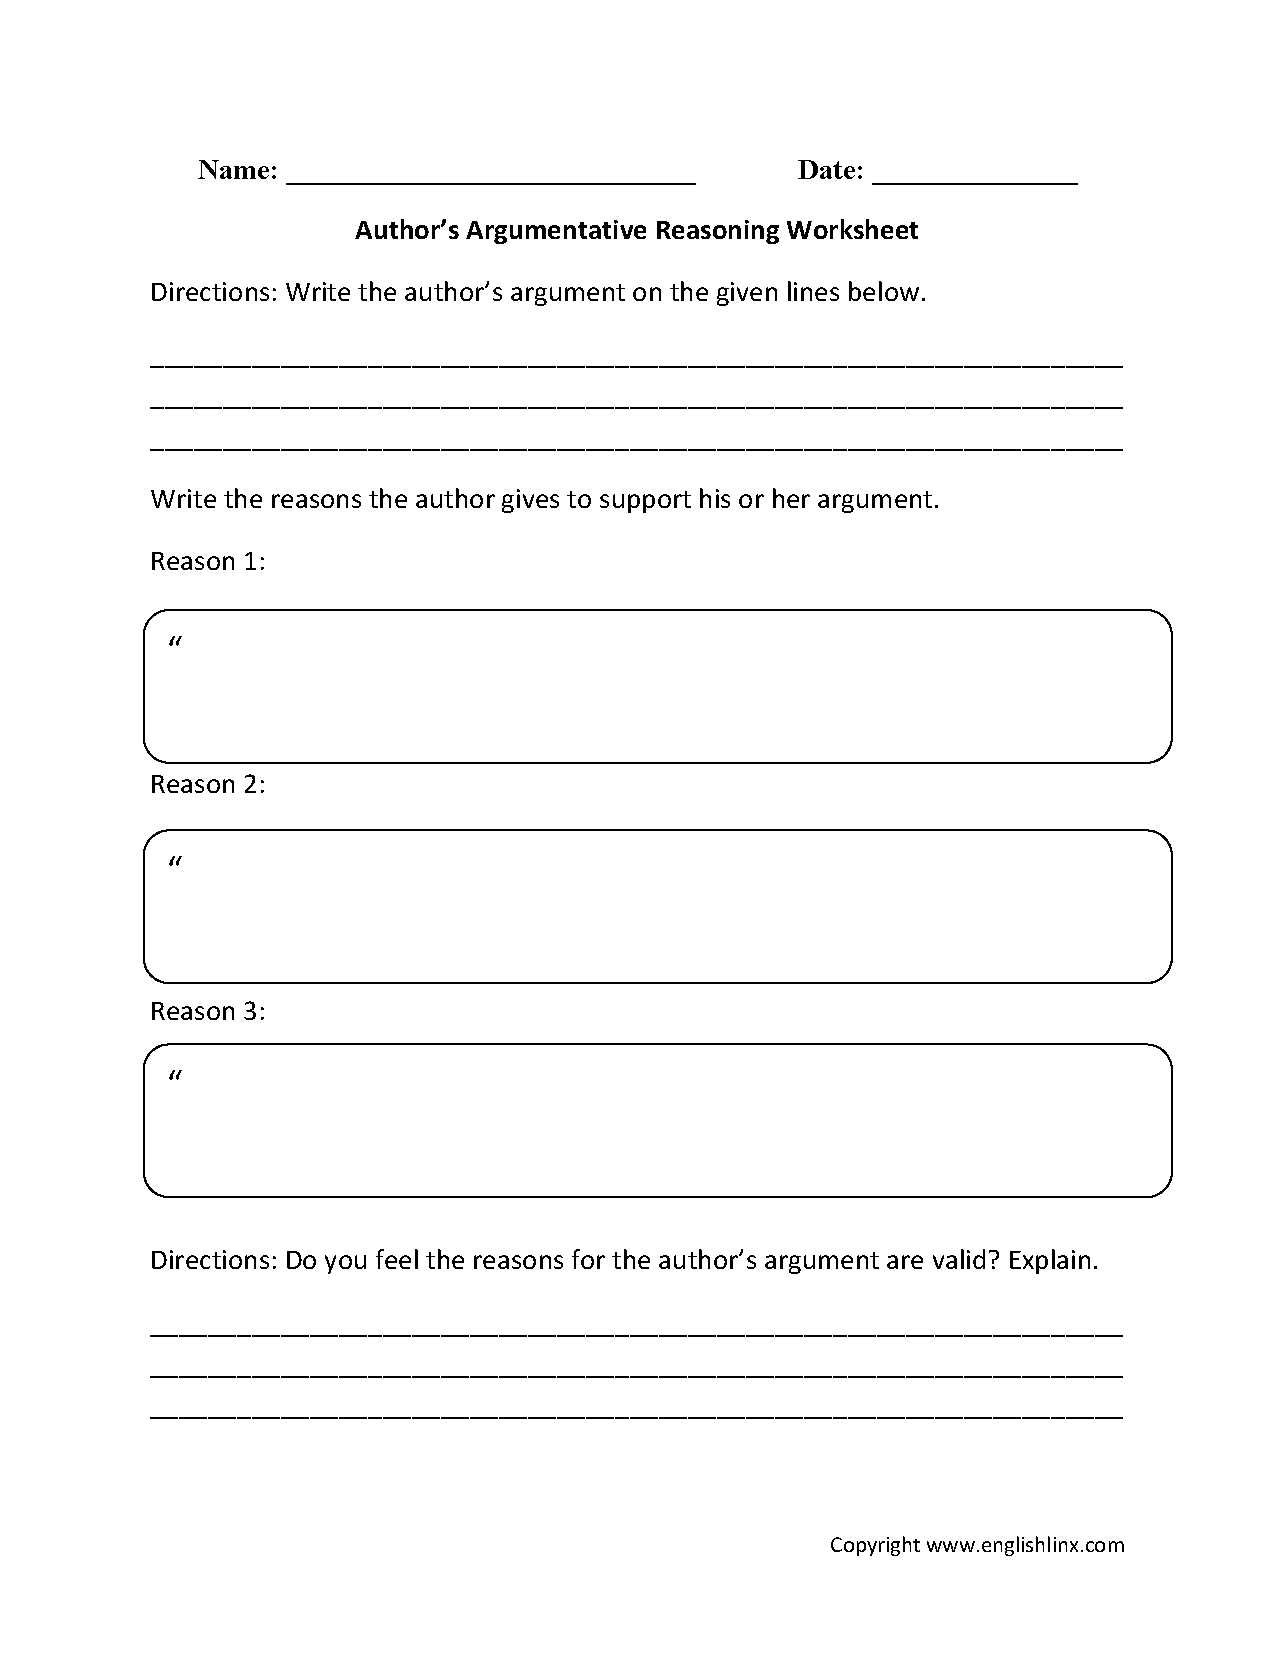 Worksheets 9th Grade Reading Comprehension Worksheets reading comprehension worksheets authors argumentative worksheets